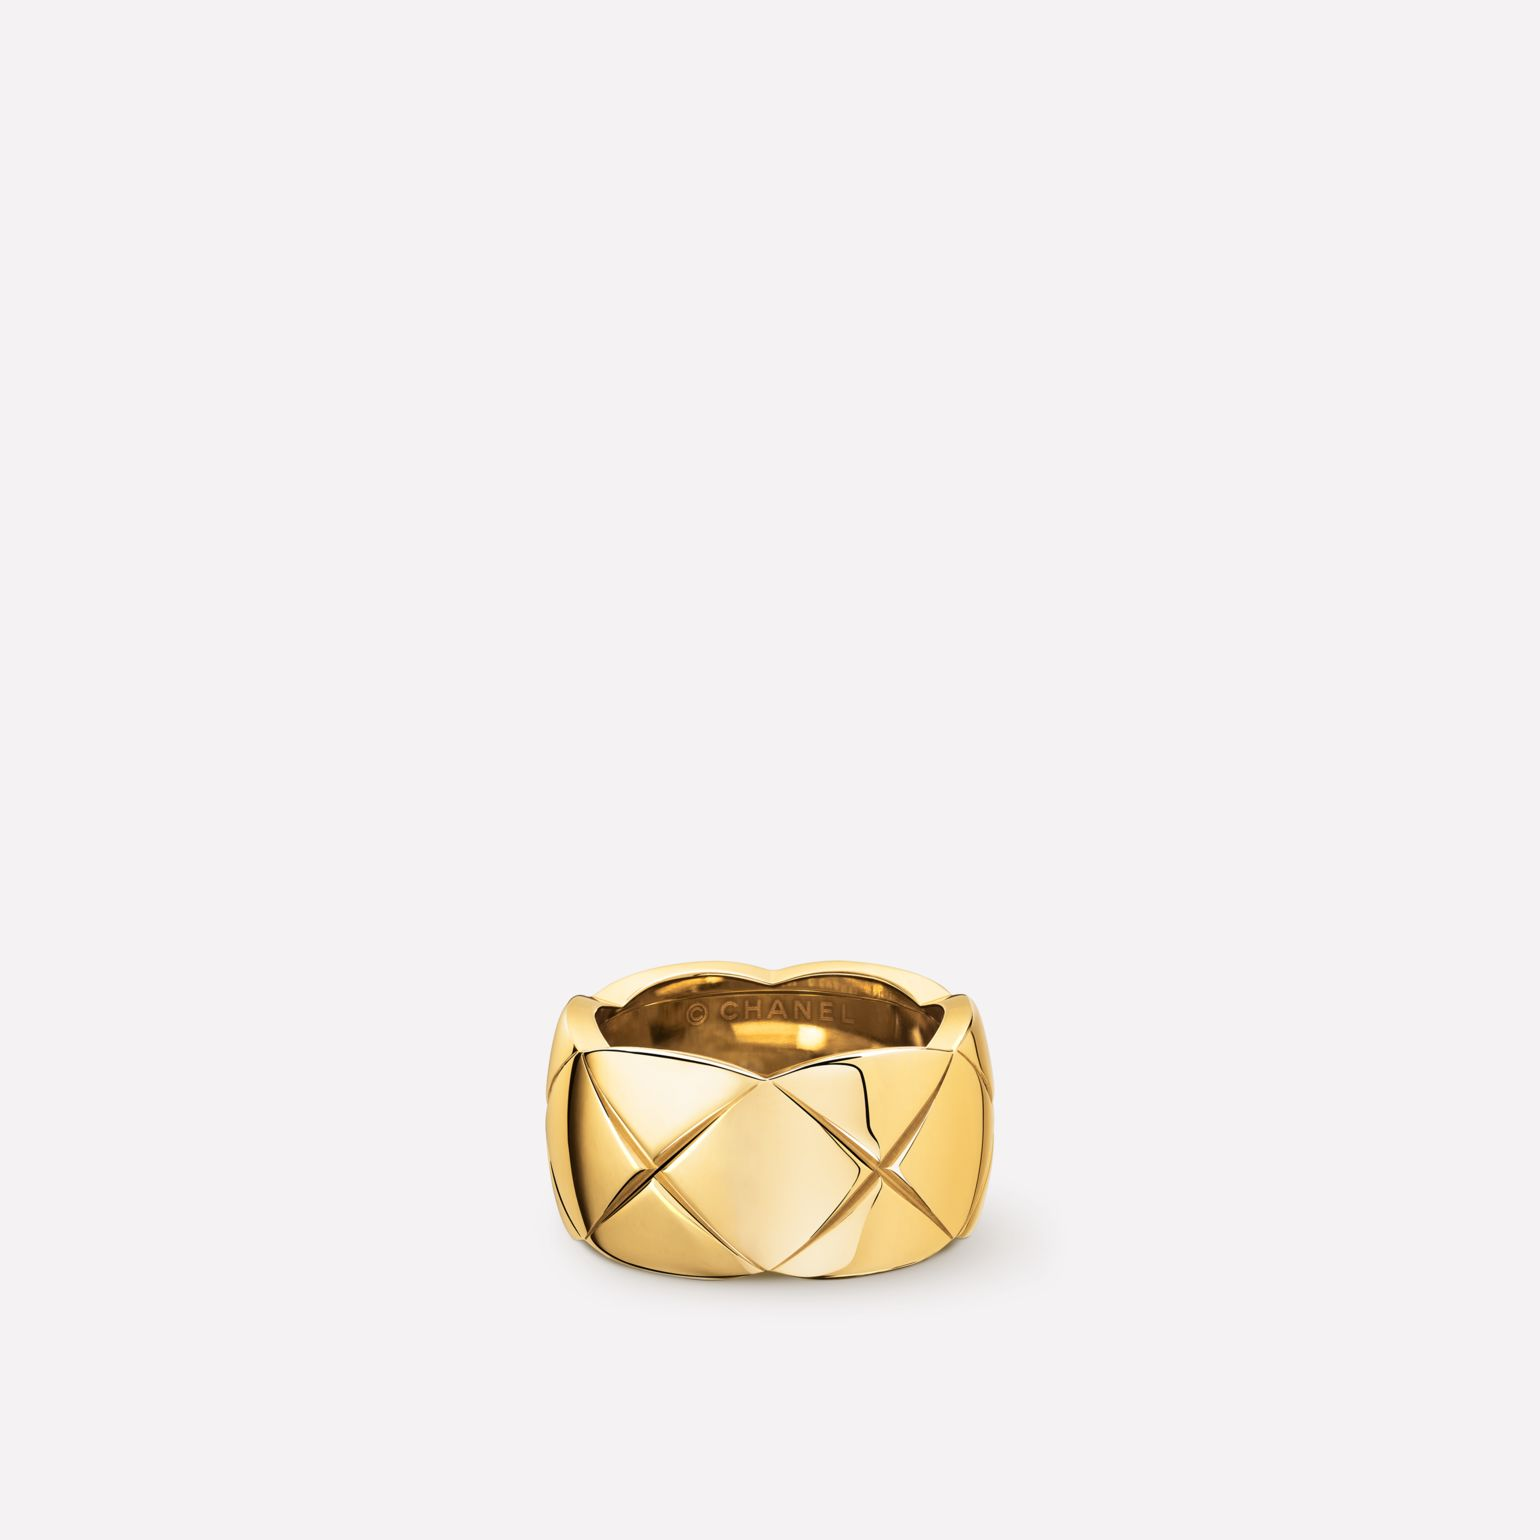 Coco Crush ring Quilted motif, large version, 18K yellow gold